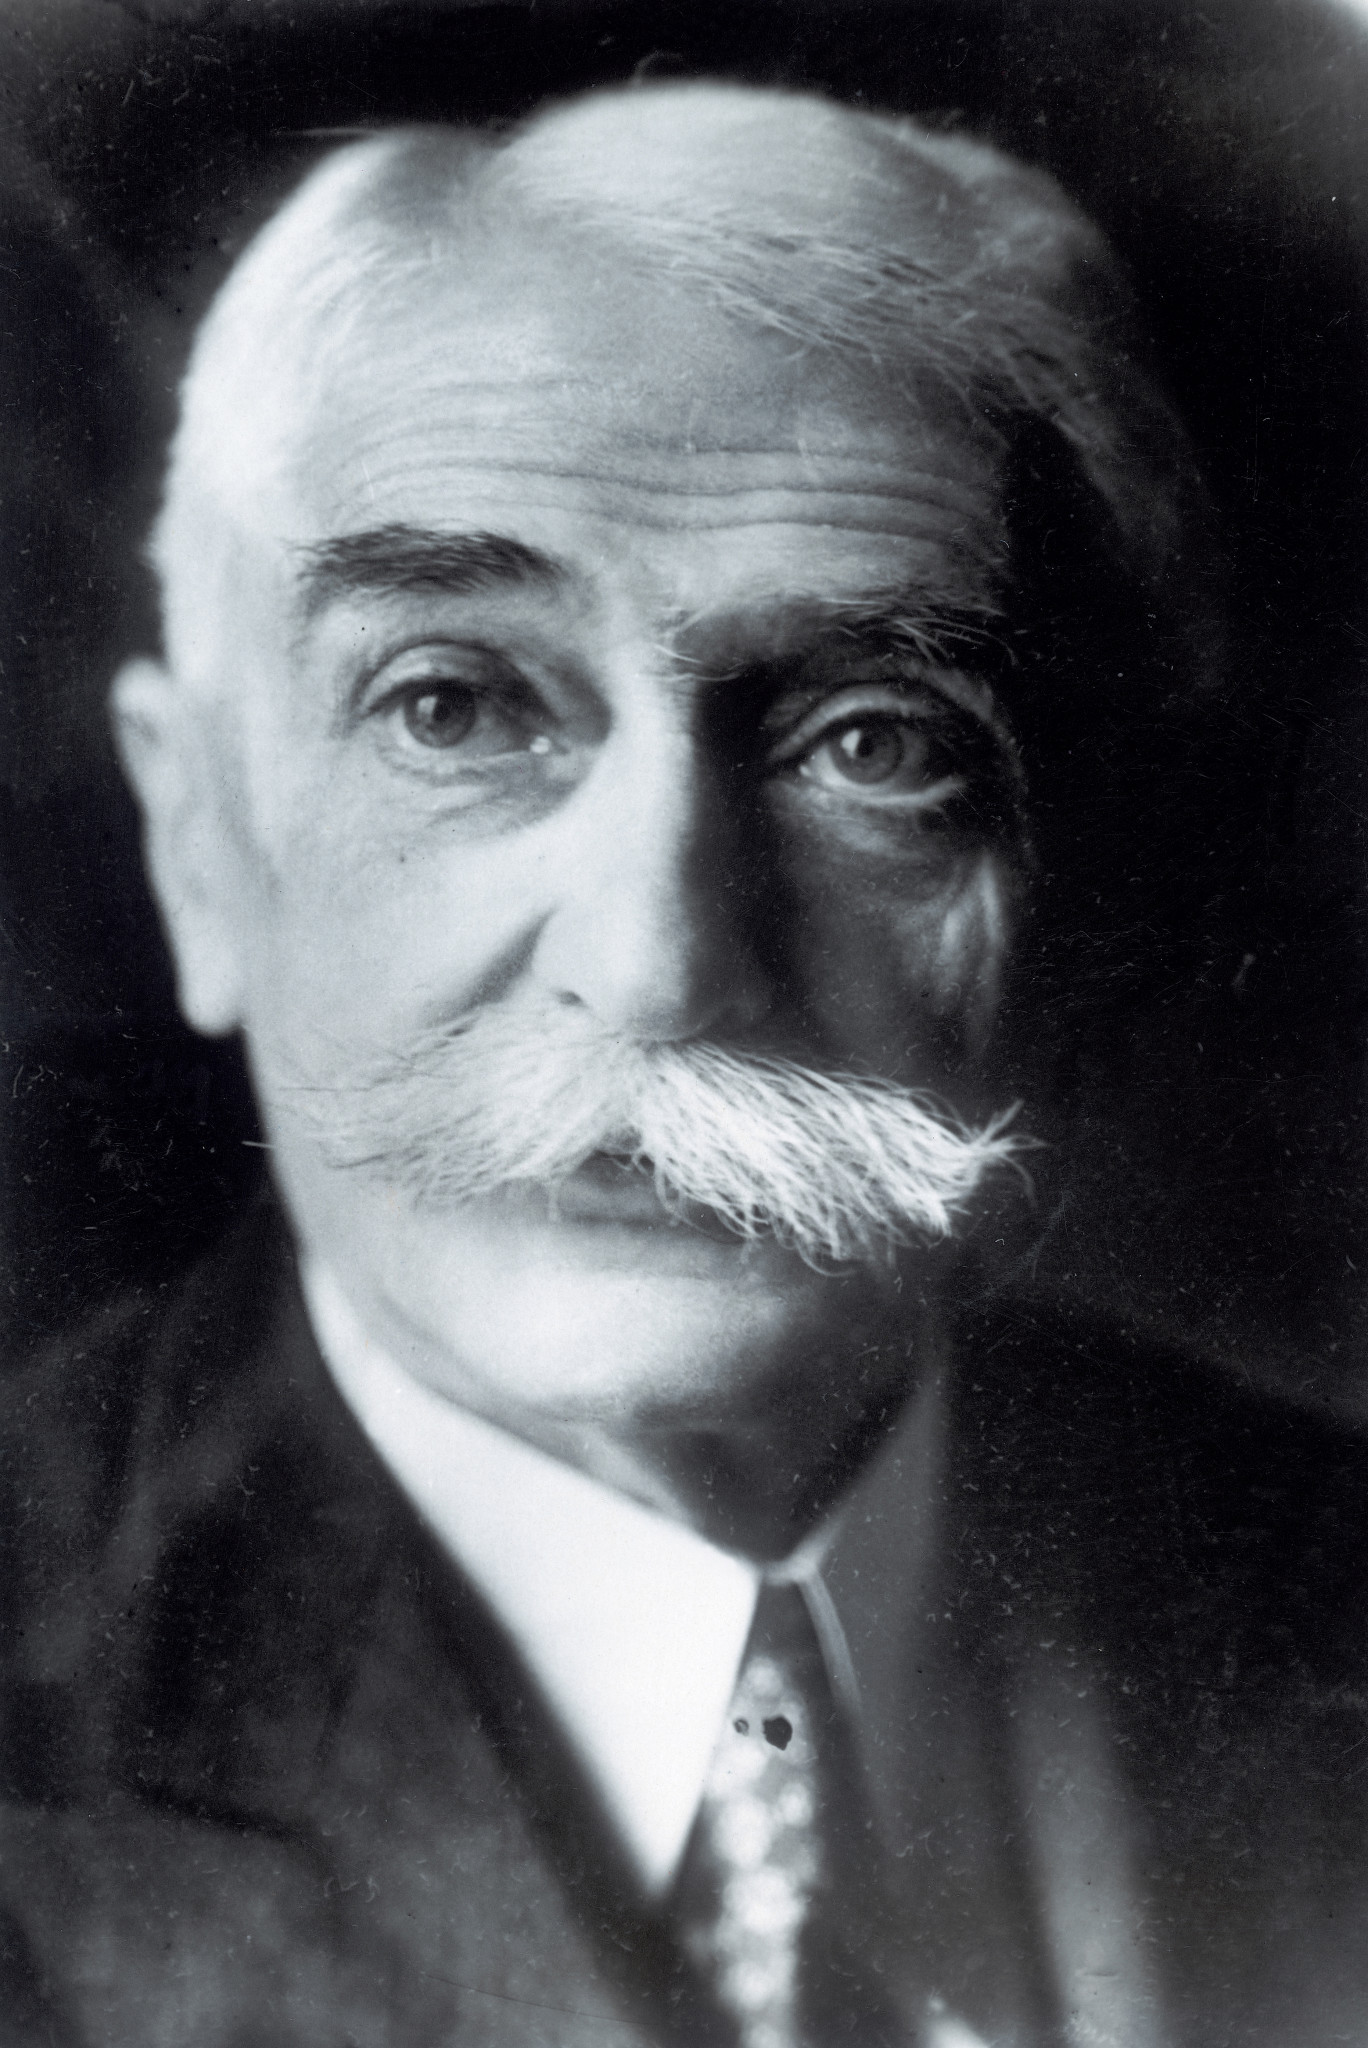 Pierre de Coubertin, founder of the International Olympic Committee, ran the organisation from his family home, with a lot of business conducted by letters ©Getty Images